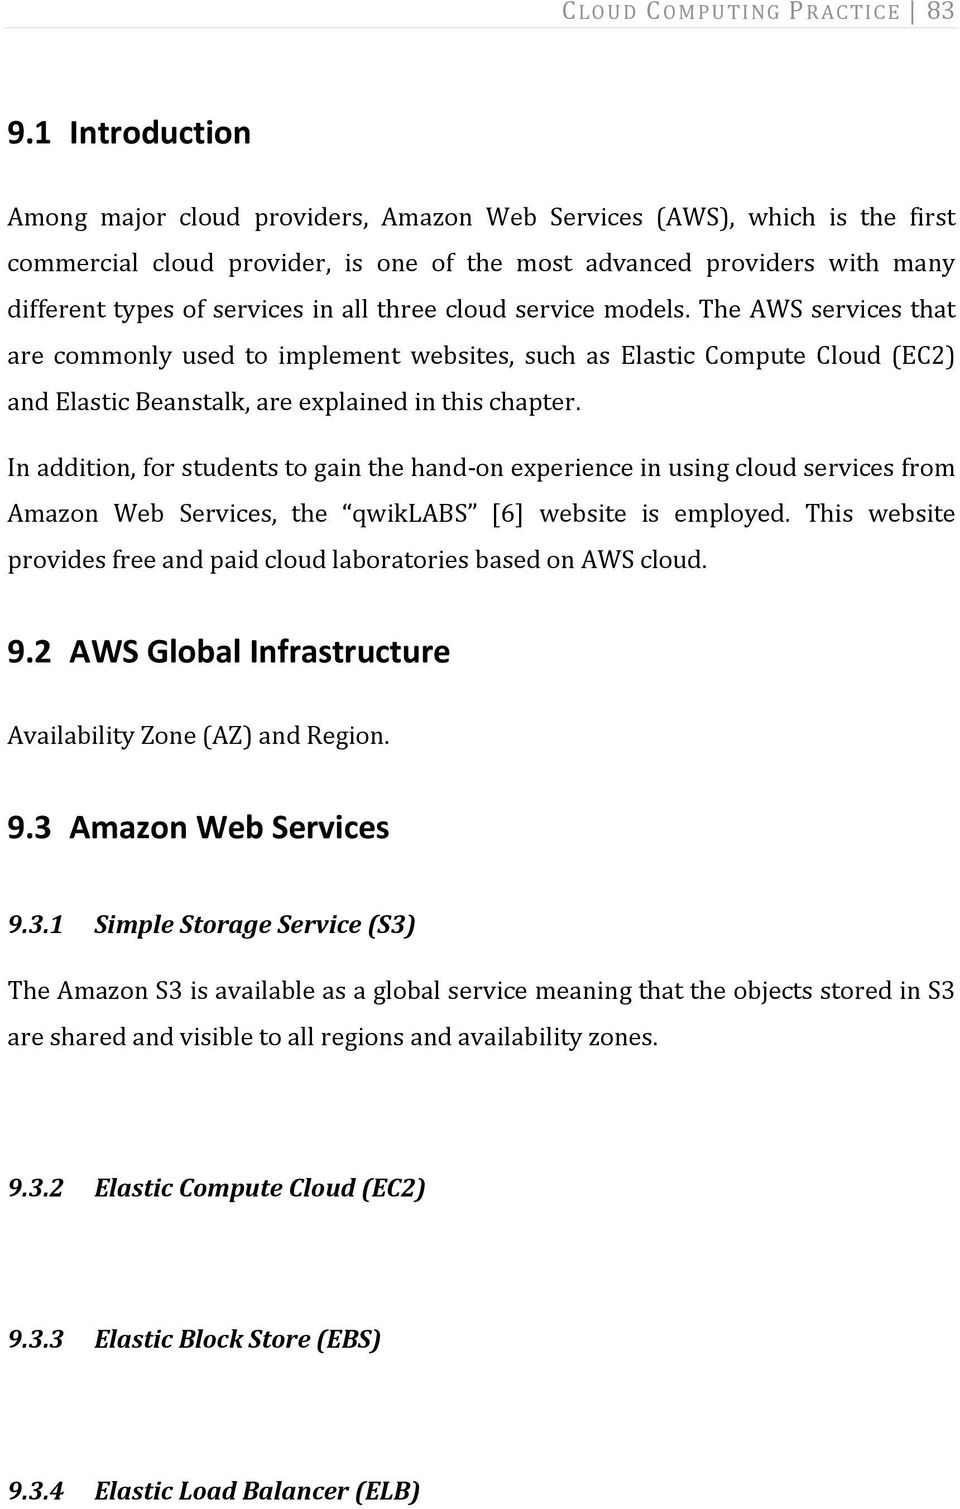 three cloud service models. The AWS services that are commonly used to implement websites, such as Elastic Compute Cloud (EC2) and Elastic Beanstalk, are explained in this chapter.